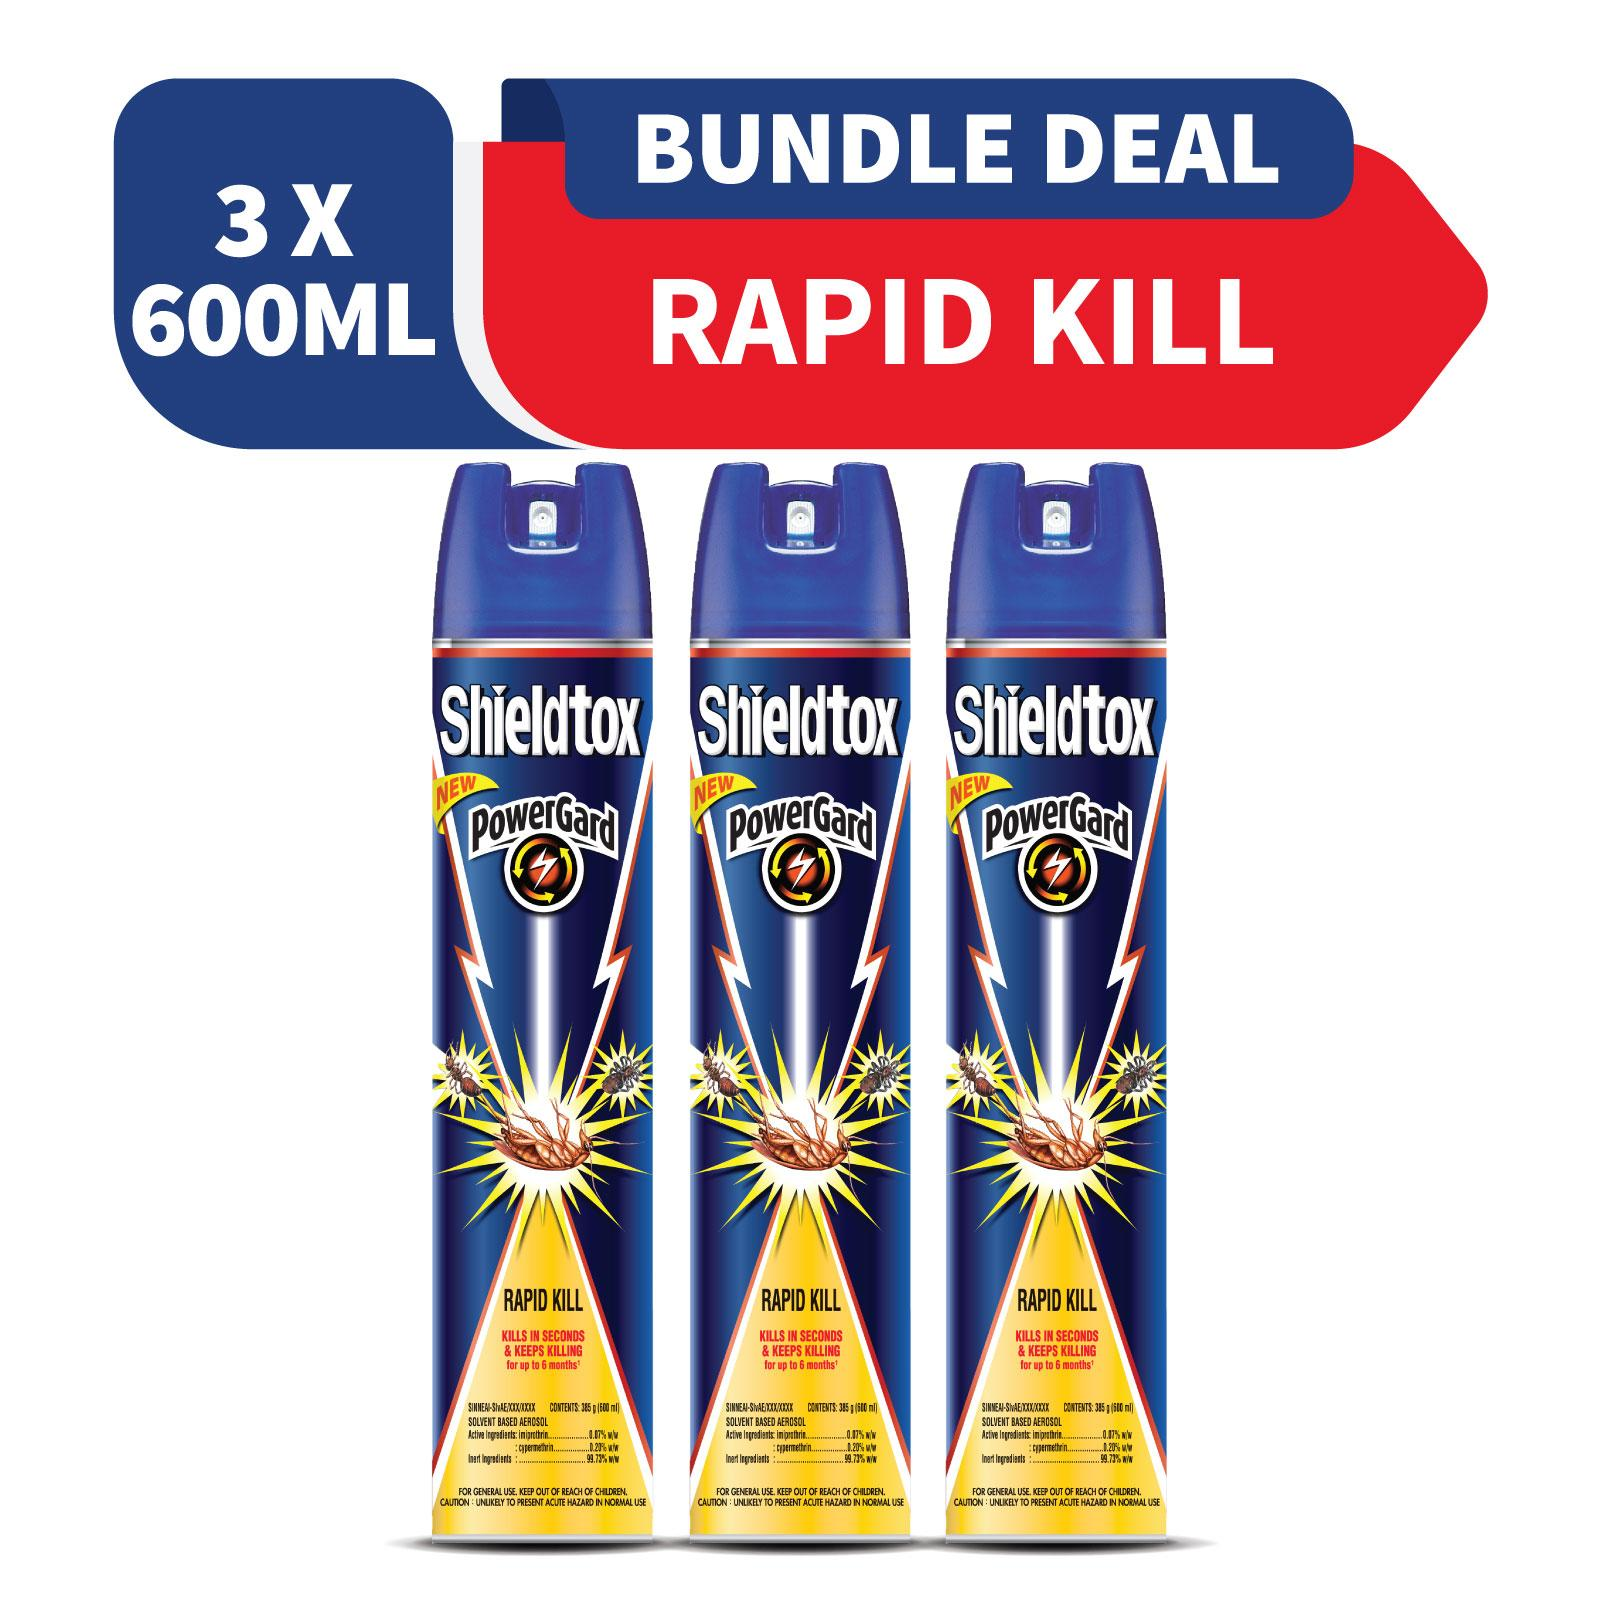 Shieldtox Powergard Rapid Kill 600ml X 3 By Rb Home.